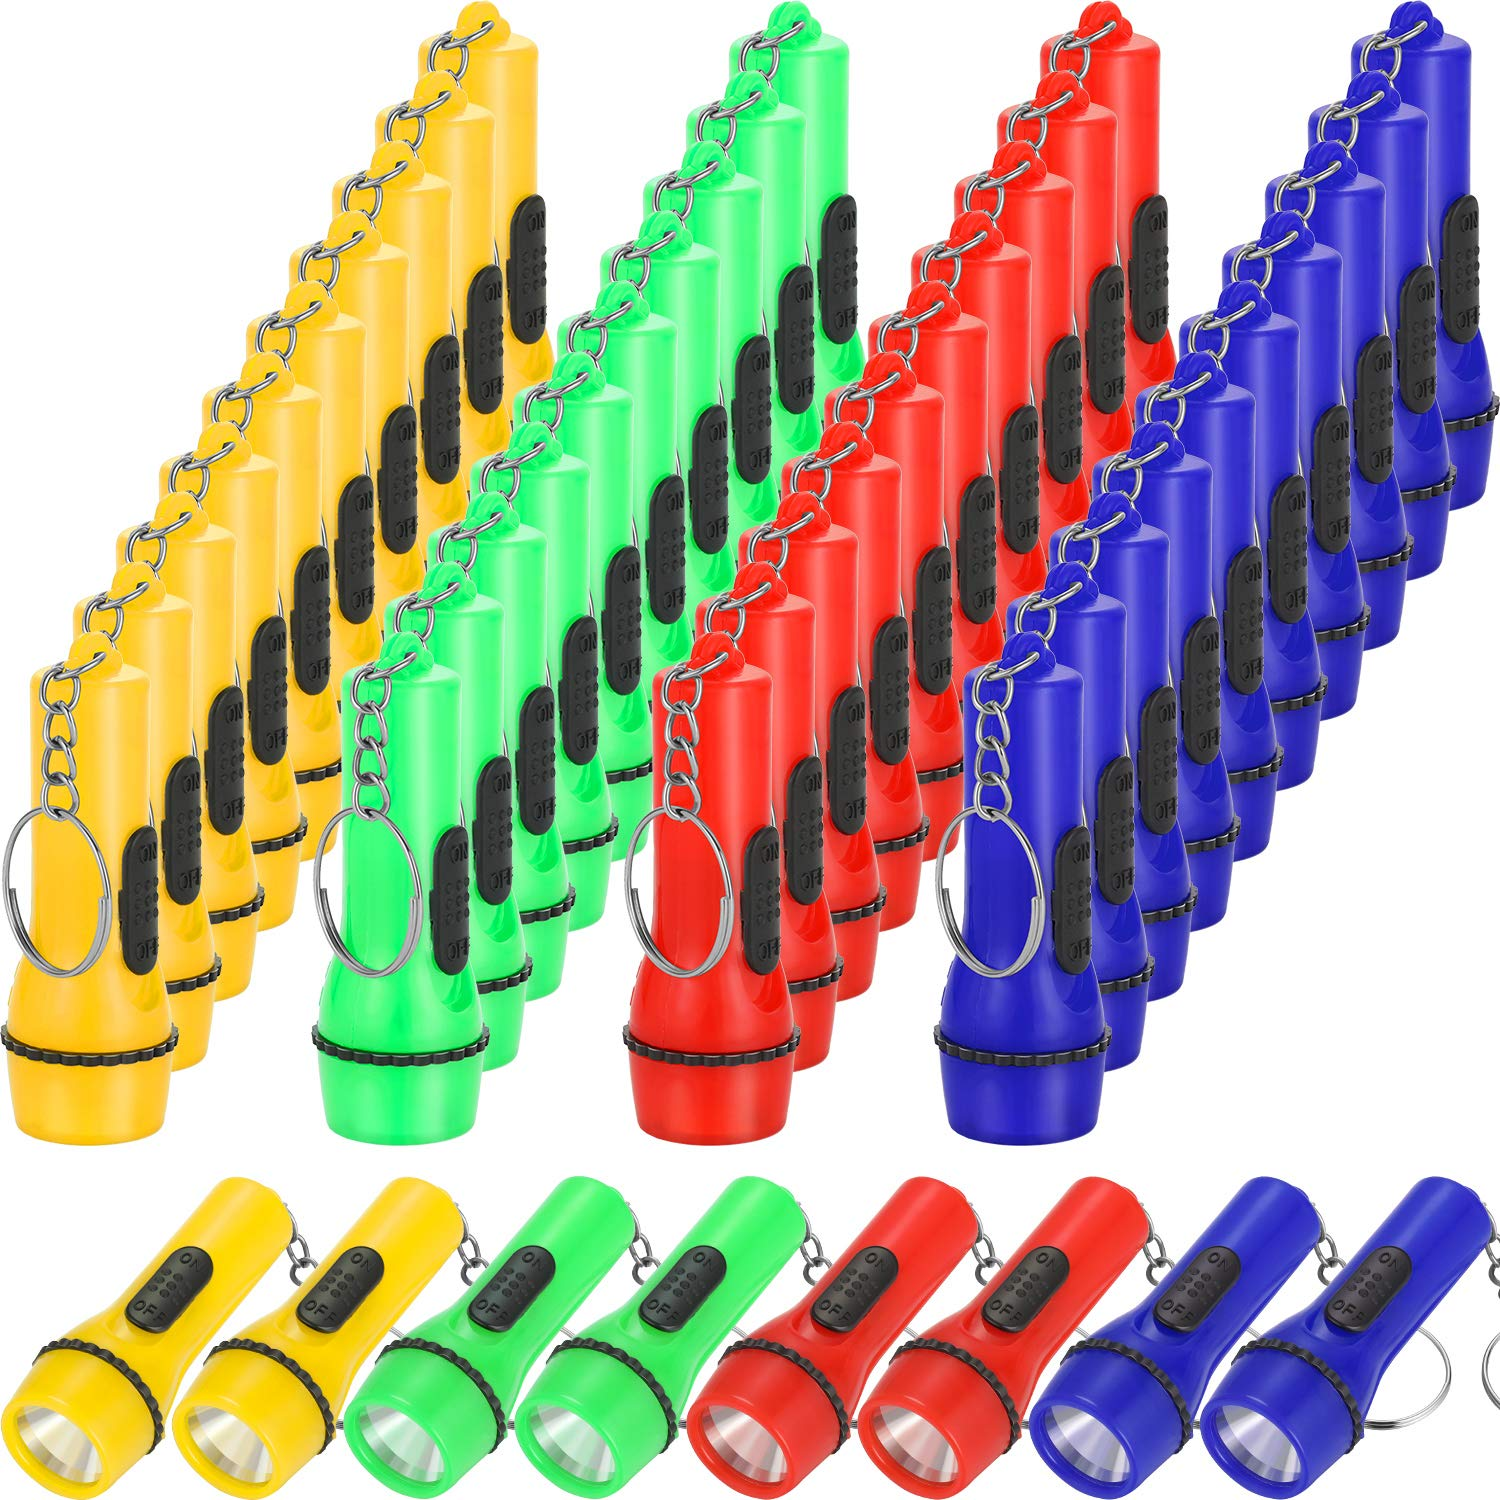 48 Pieces Mini Flashlight Keychain Assorted Colors Toy Flashlight for Hiking Camping Party Favors by Boao